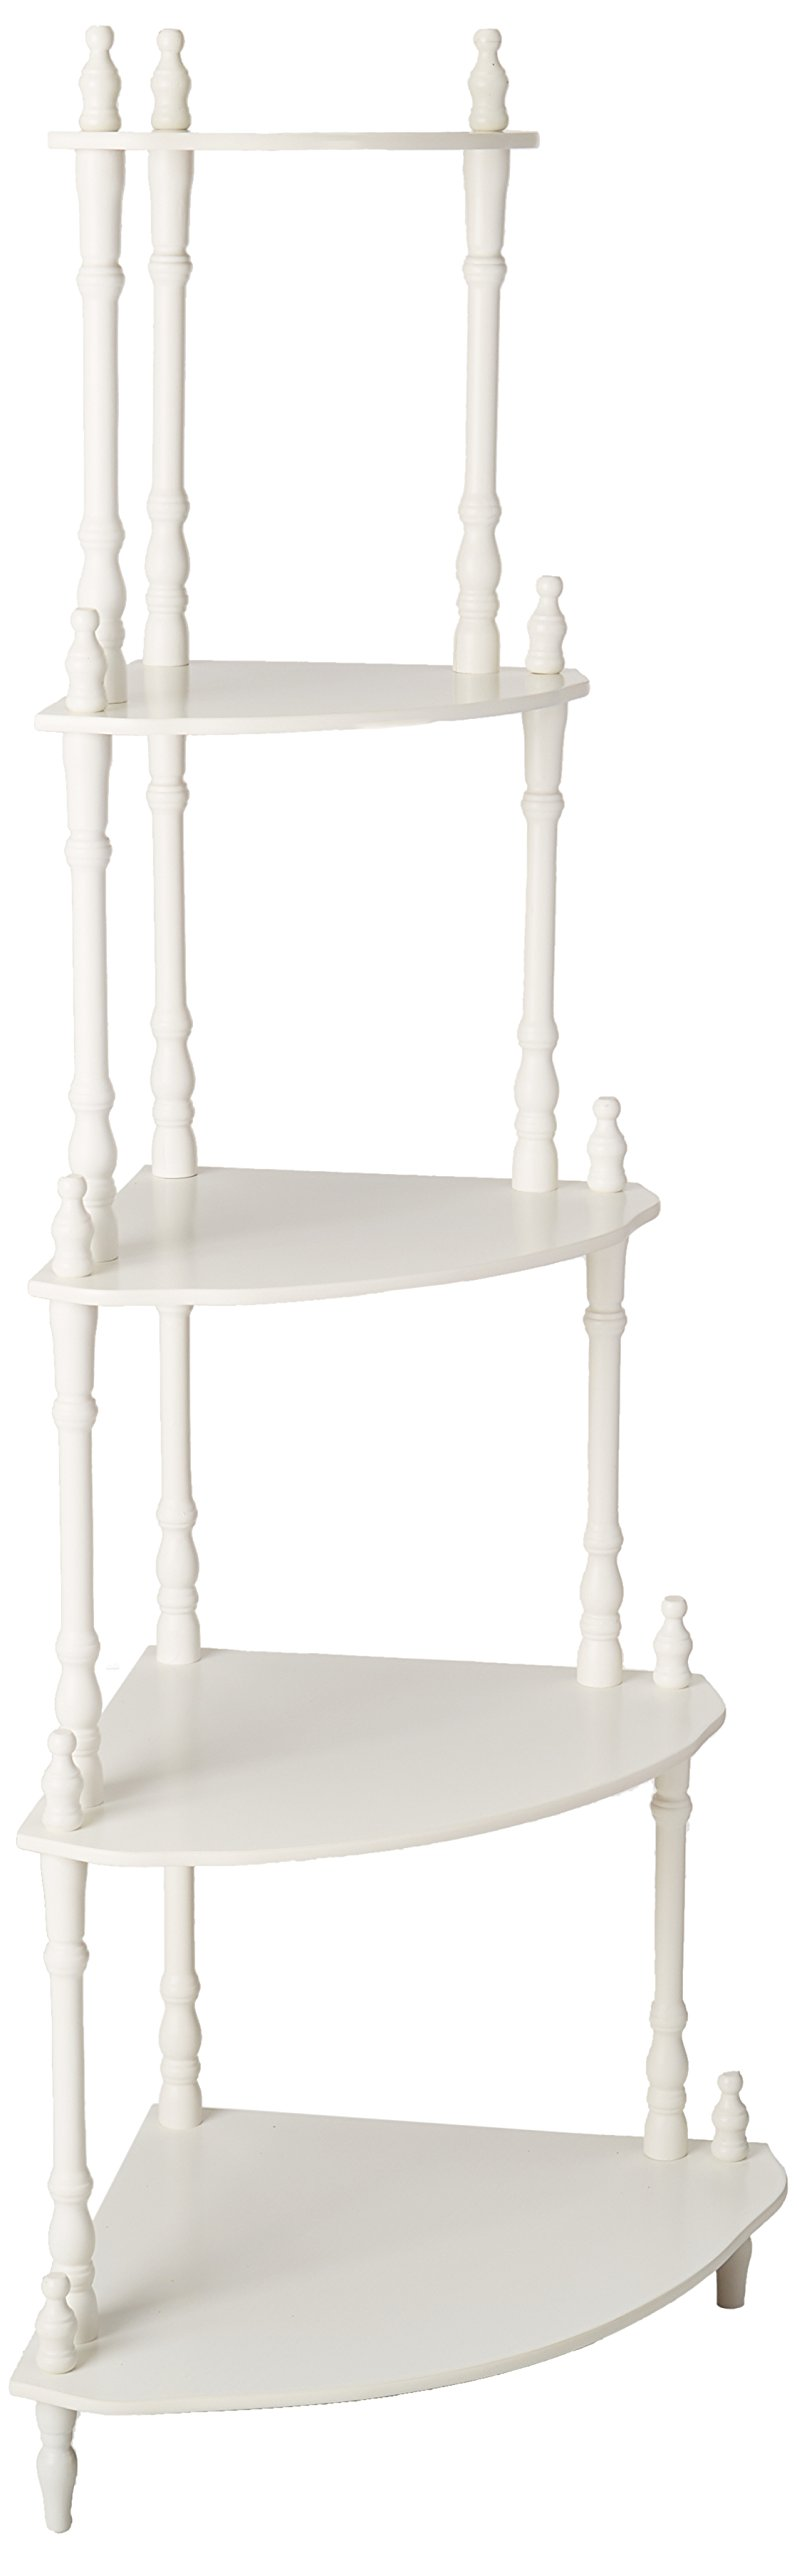 Frenchi Furniture - 5-Tier Corner Stand Finish: White by Frenchi (Image #2)